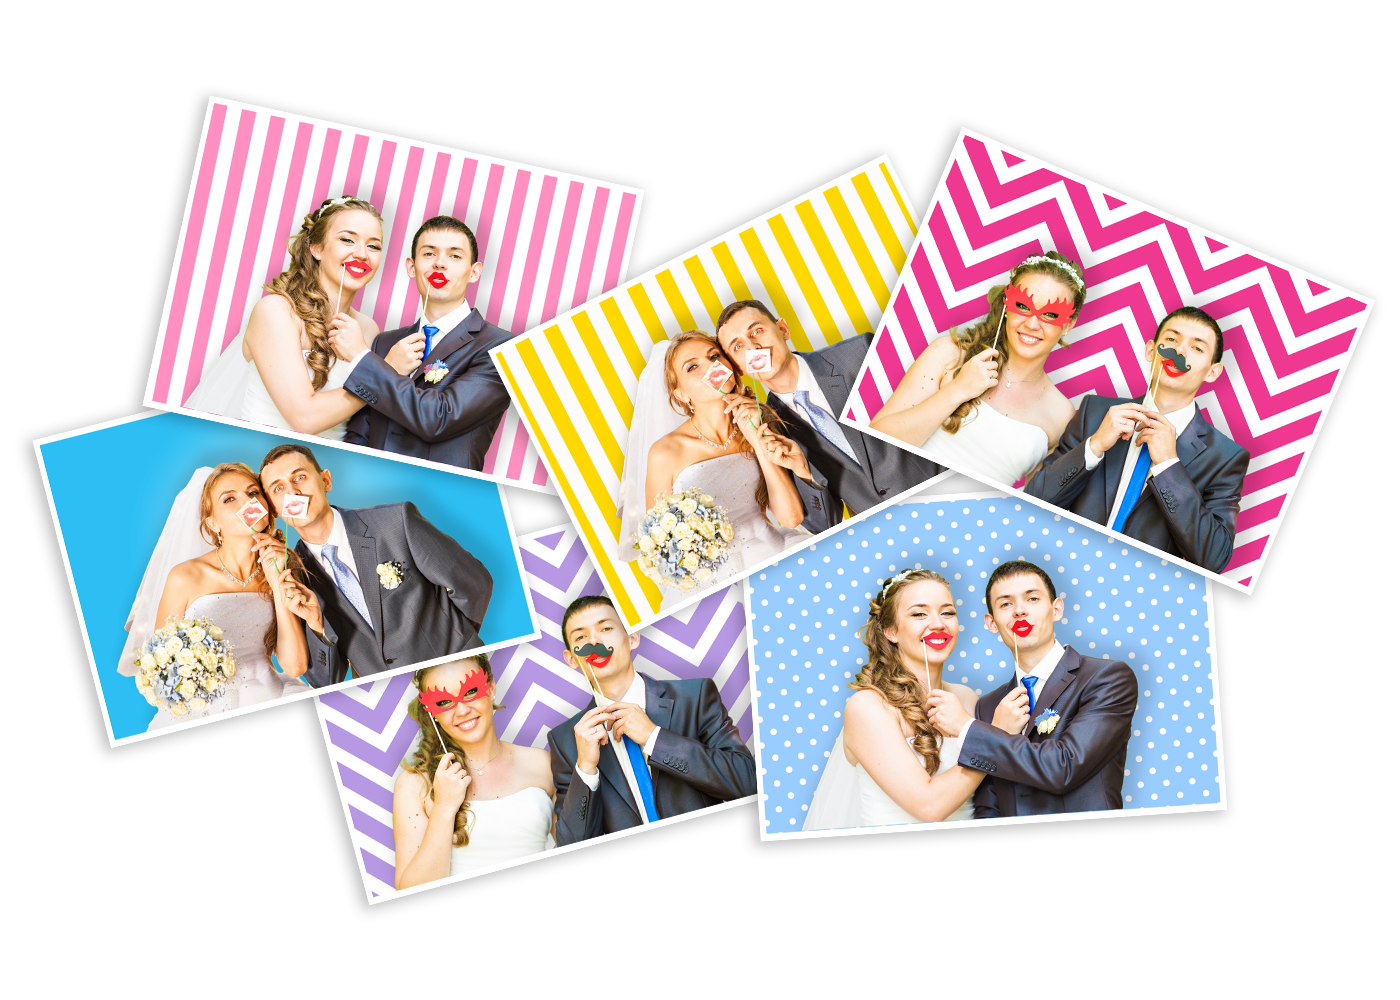 Leeds based photo booth hire